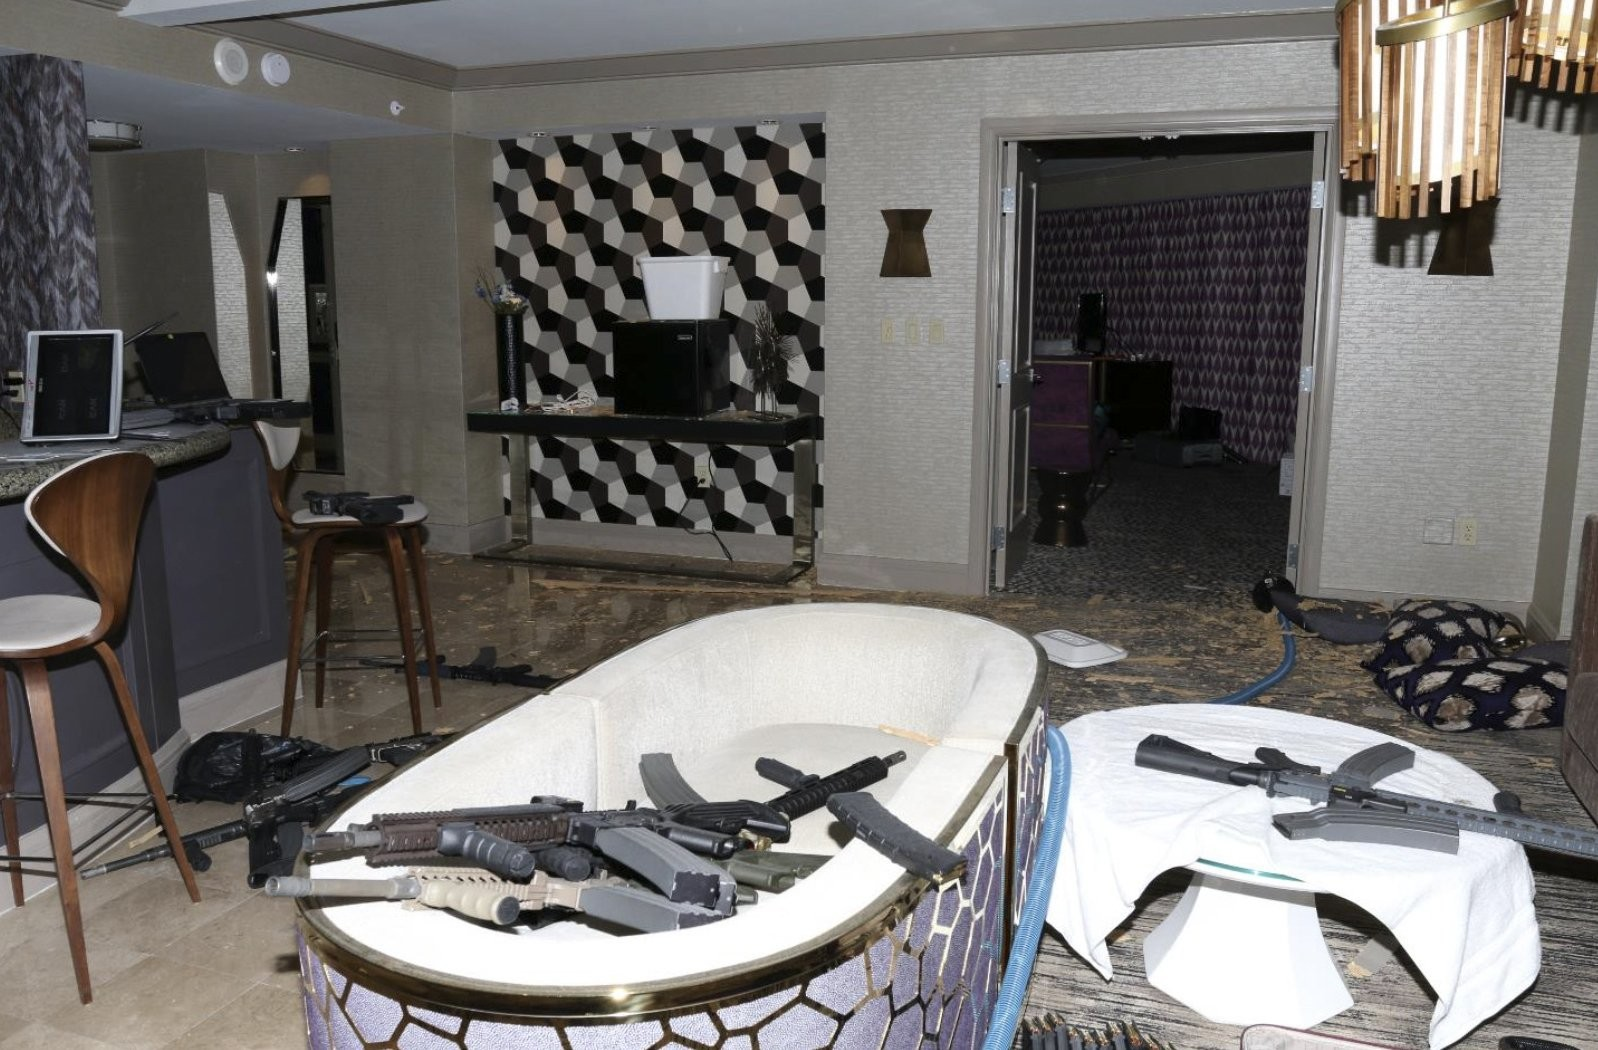 This photo of Stephen Paddock's Mandalay Bay hotel room shows some of the 23 weapons police found after the October 1st shooting, which left 58 people dead. — Photograph: Las Vegas Metropolitan Police Department.